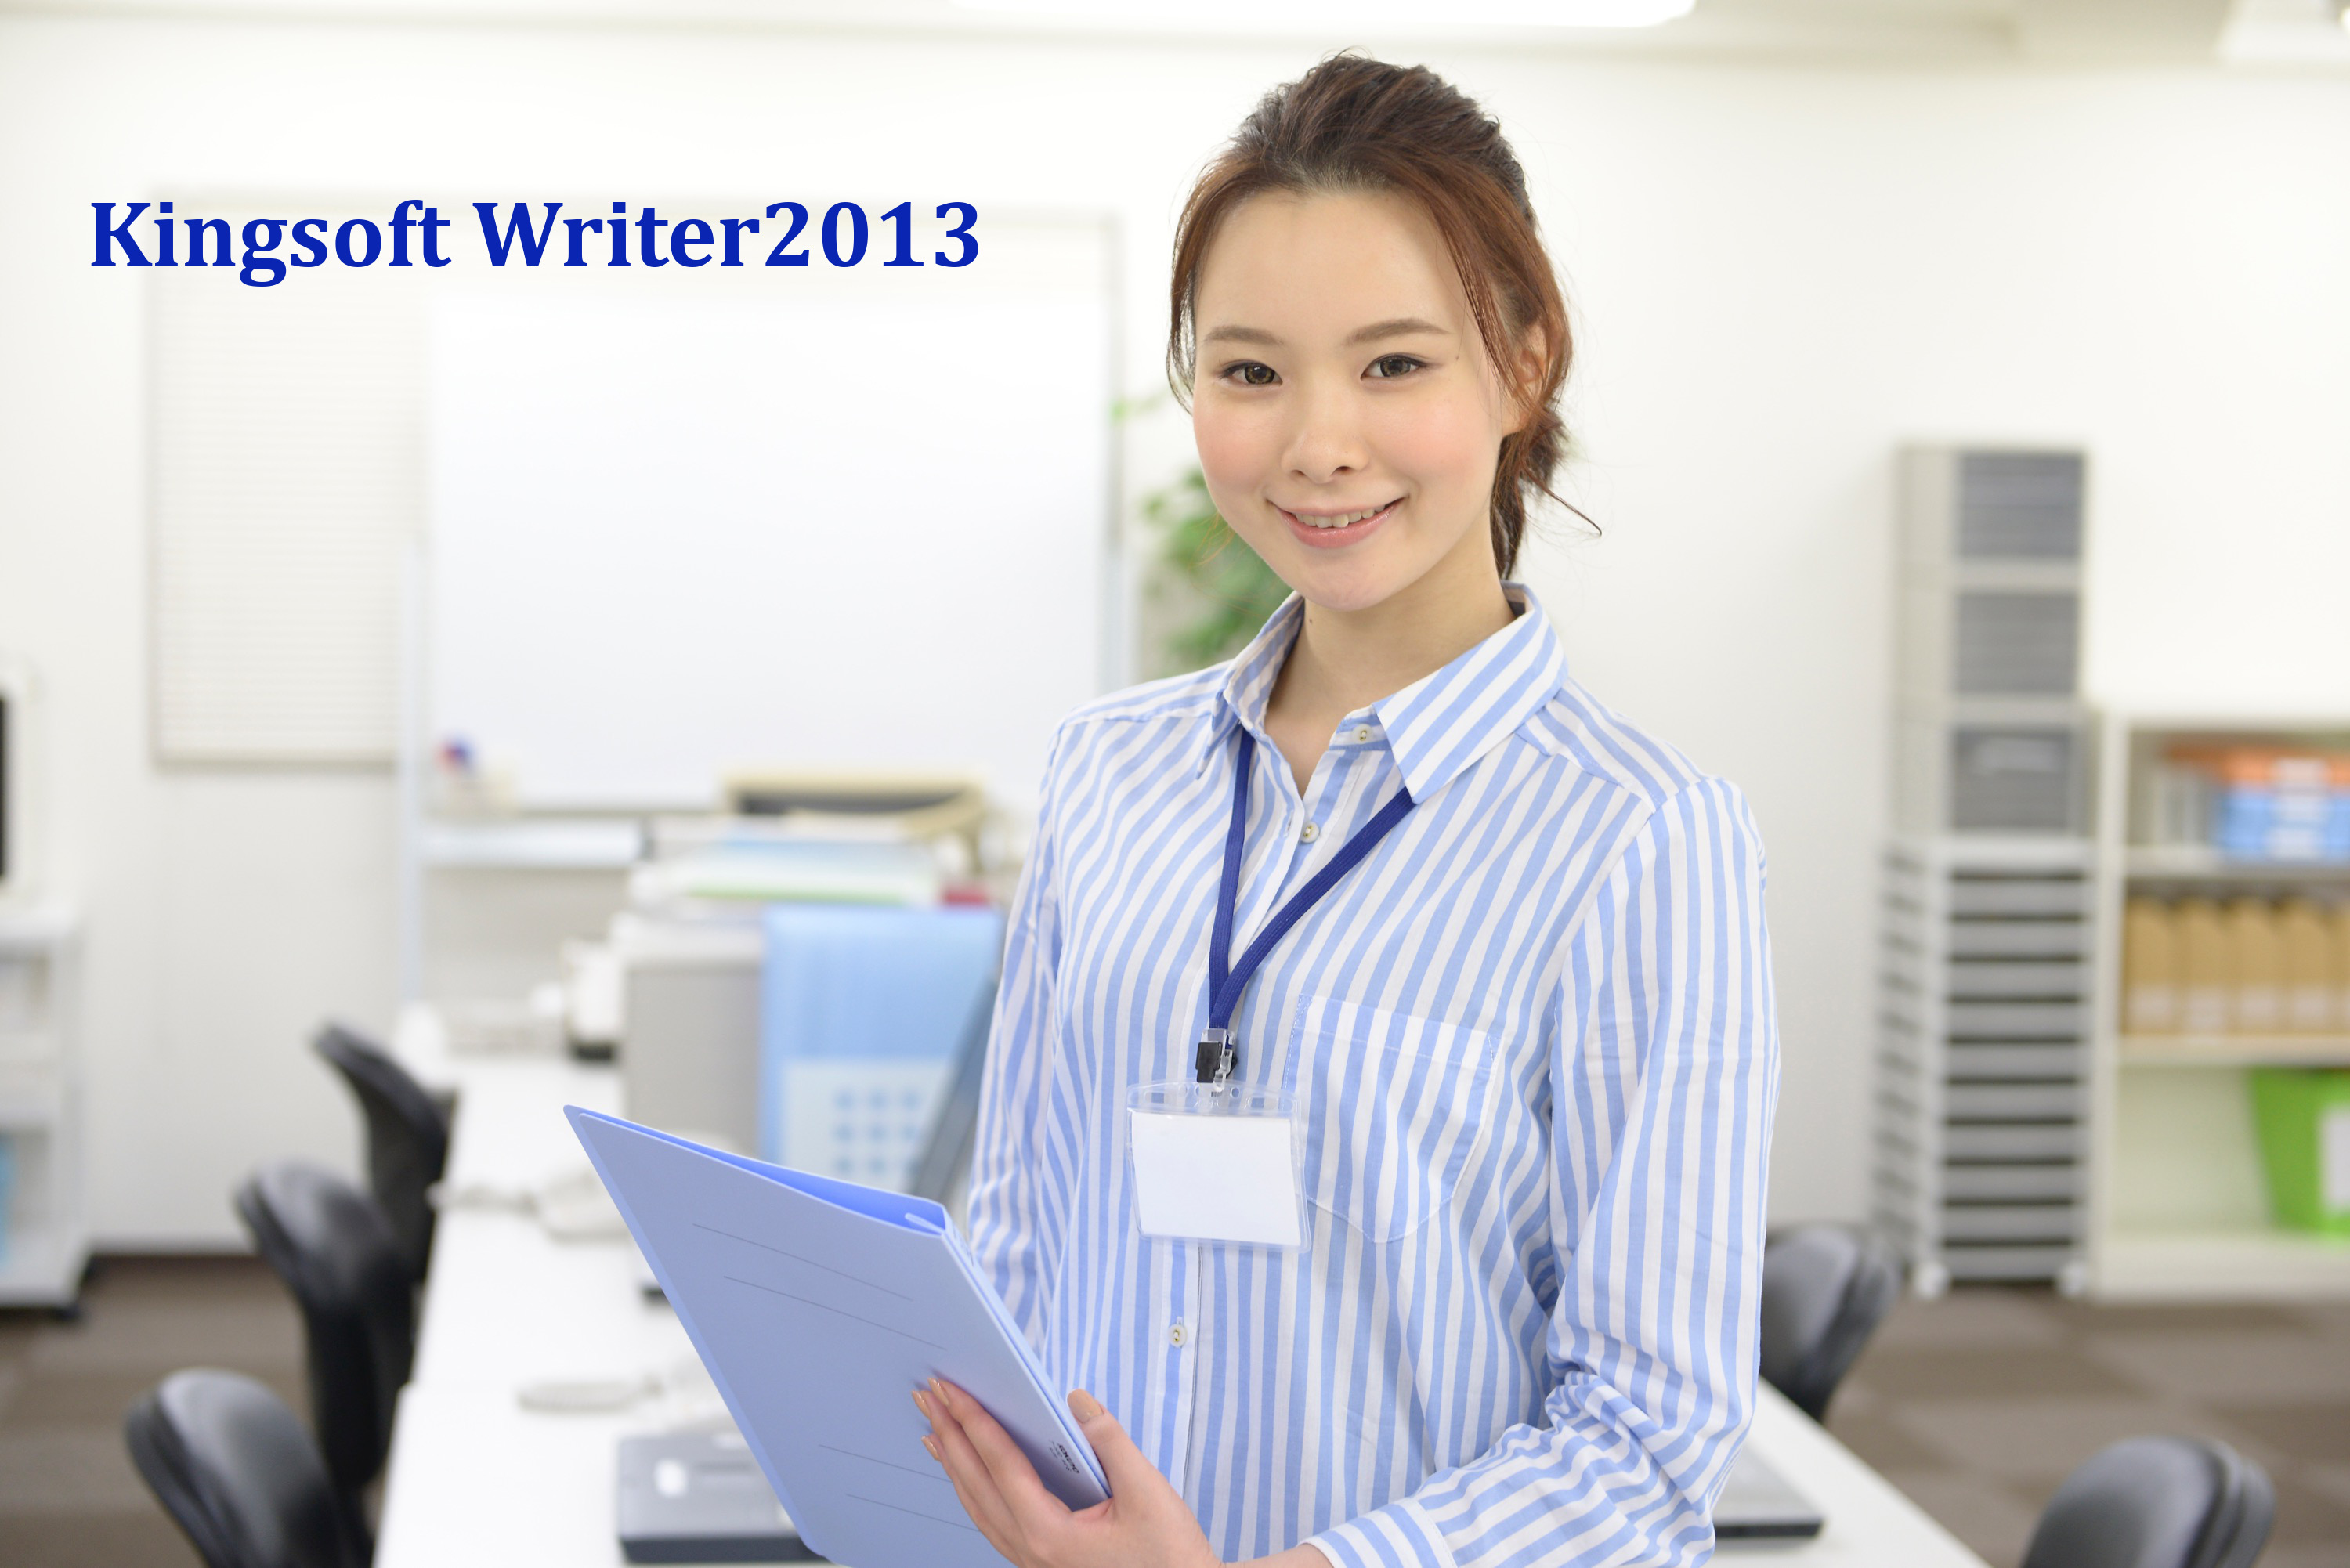 Kingsoft Writer 2013